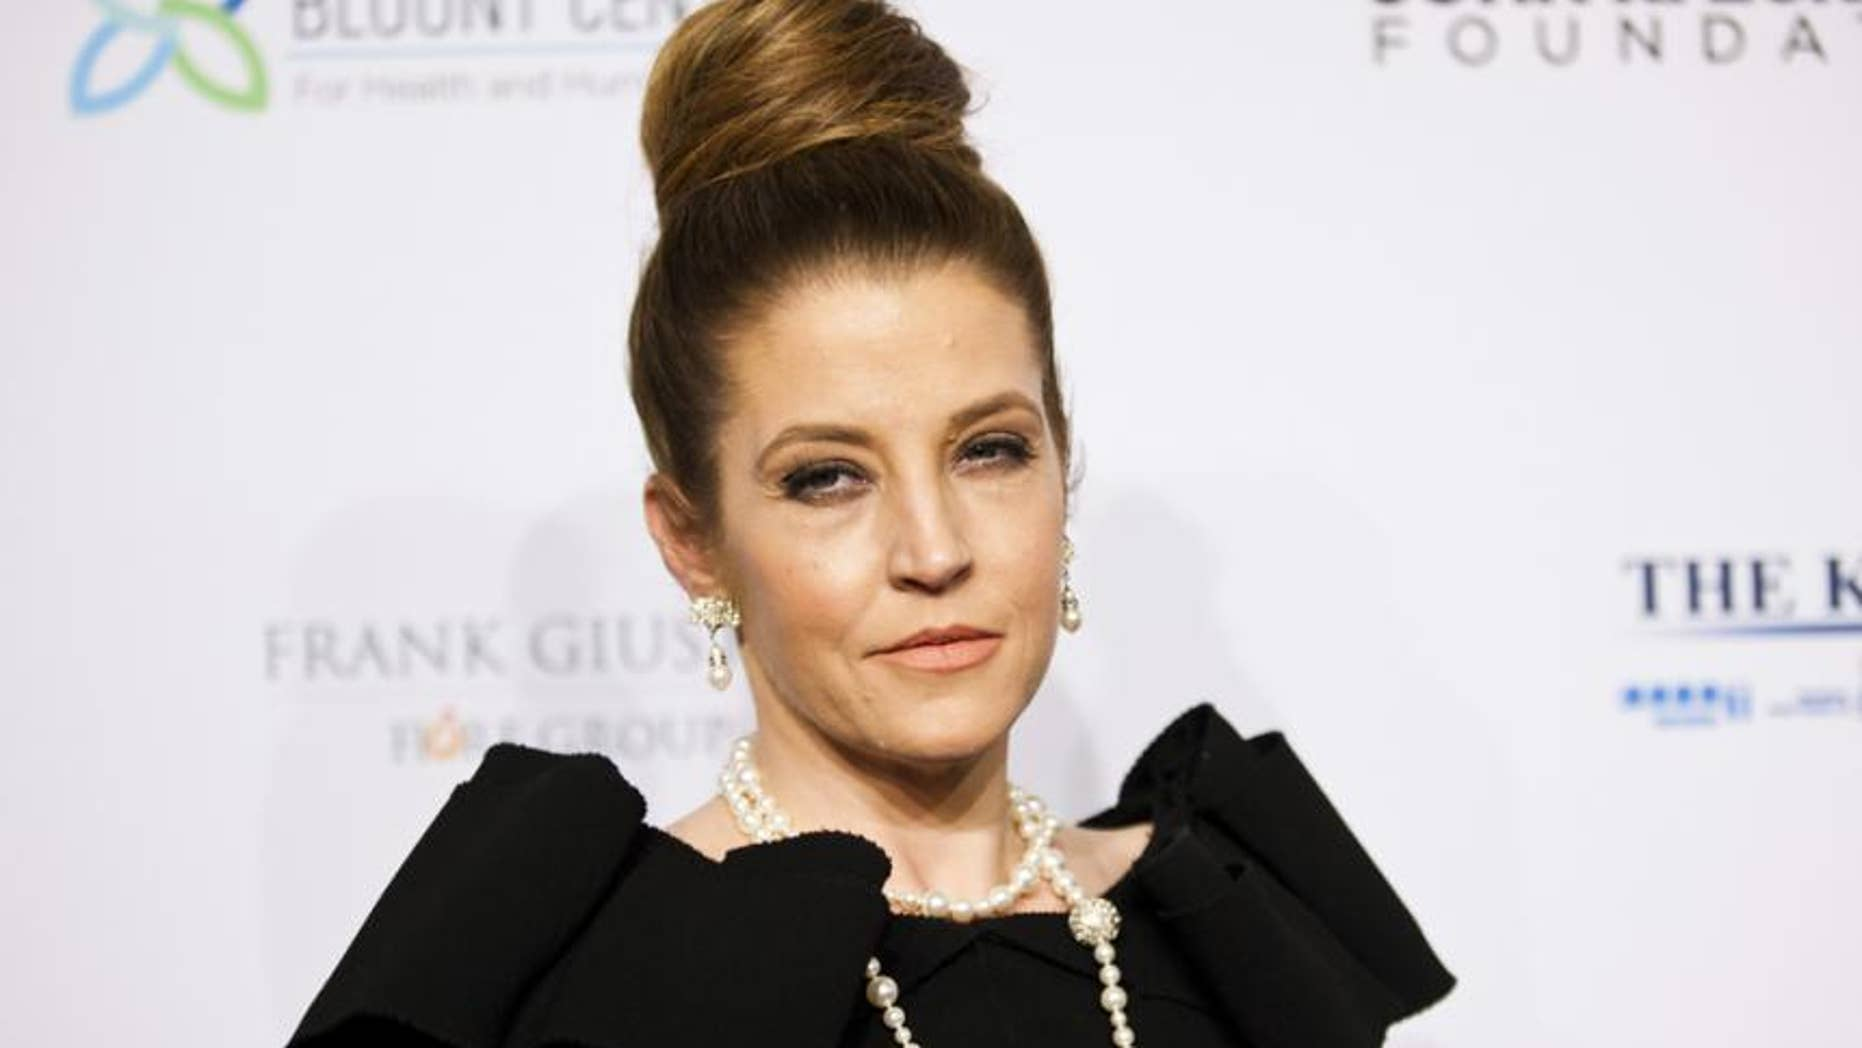 Elvis' daughter was an active member, but left the church of Scientology in 2013. READ: How Lisa Marie Presley Slimmed Down To Her Teenaged Weight